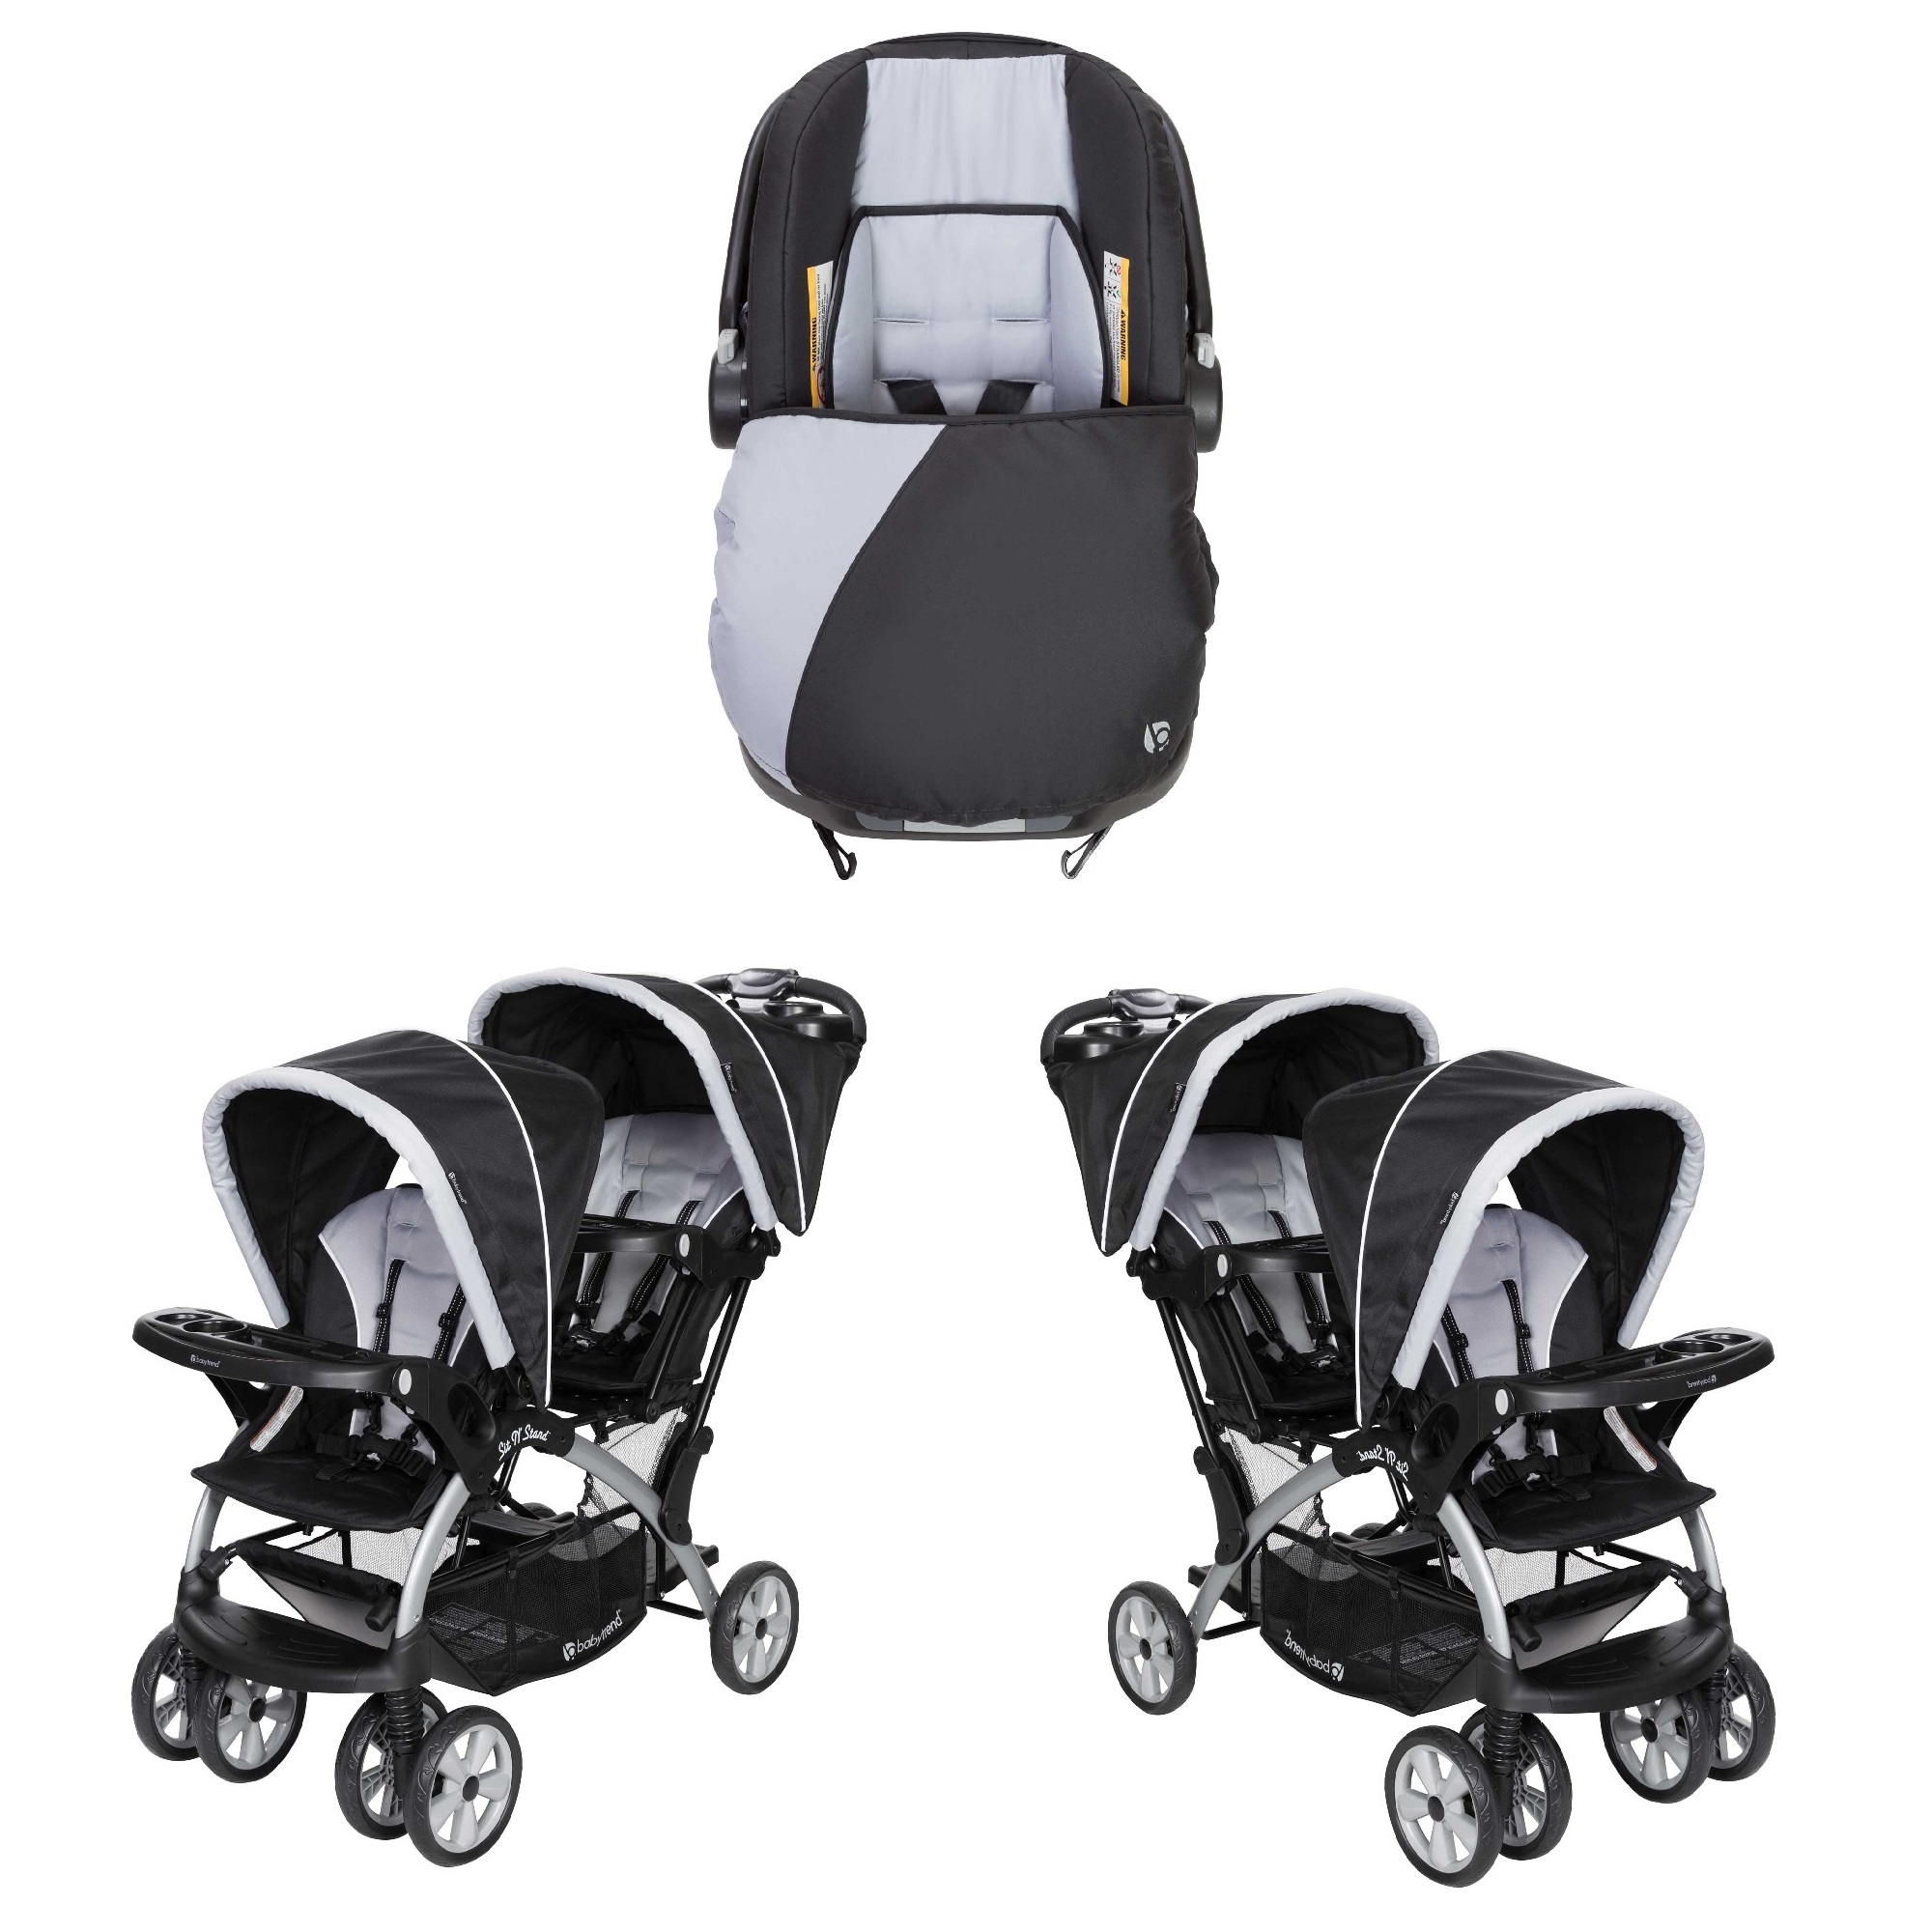 Baby Trend Infant Car Seat & Base w/ 2 Seat Double ...